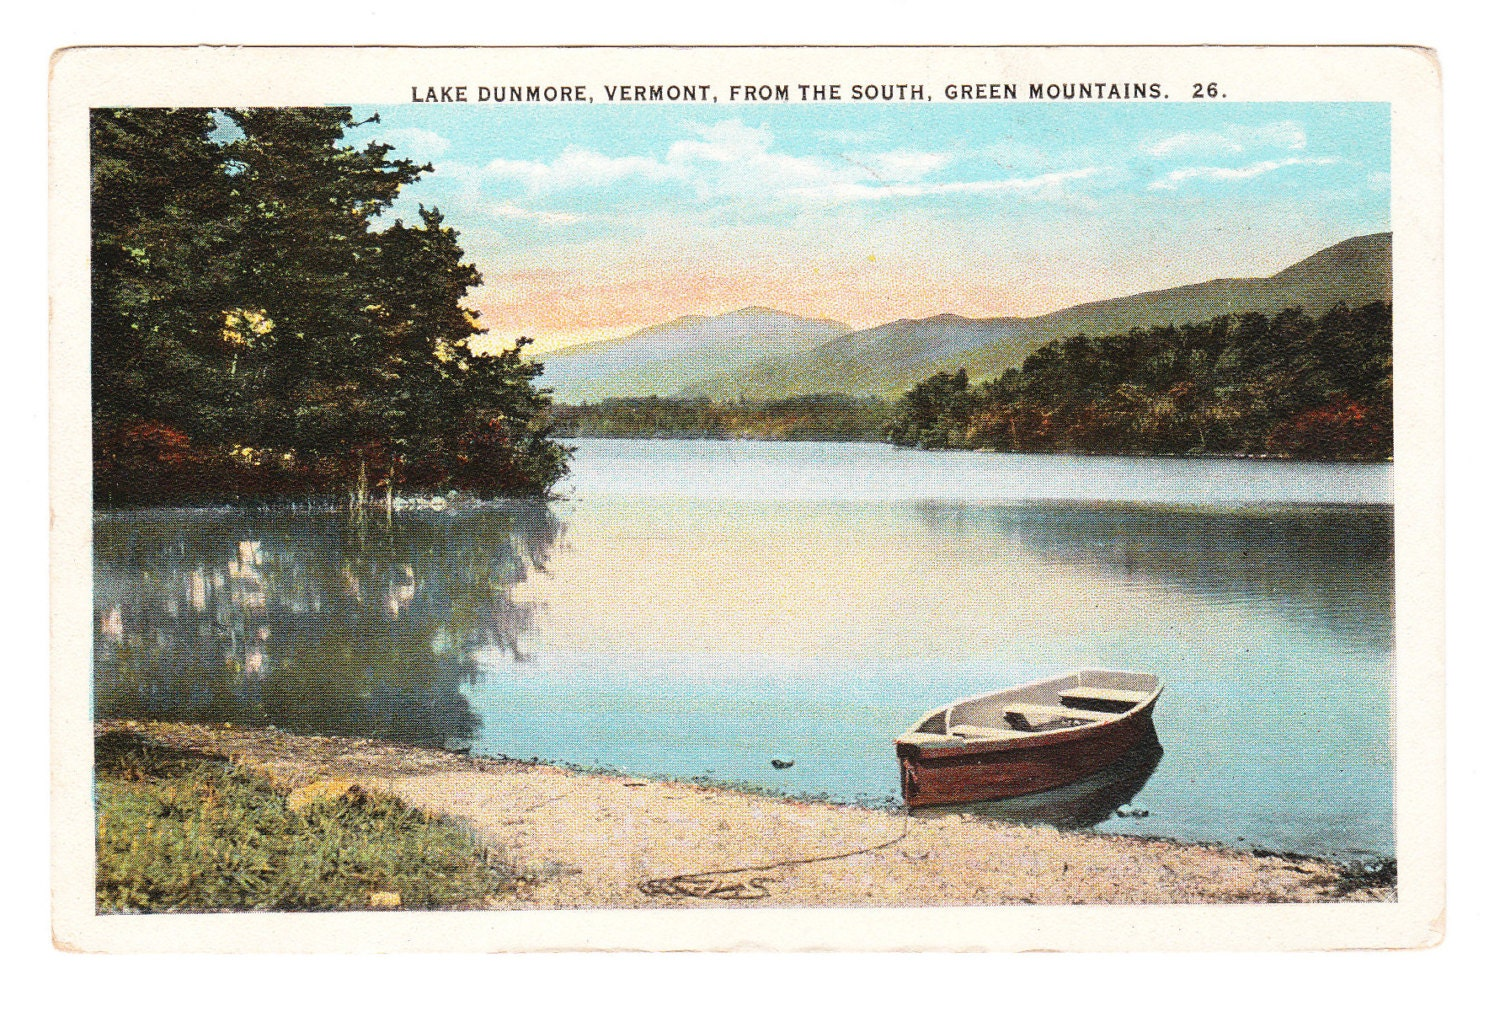 Vintage Vermont Postcard, Lake Dunmore - PicturesFromThePast